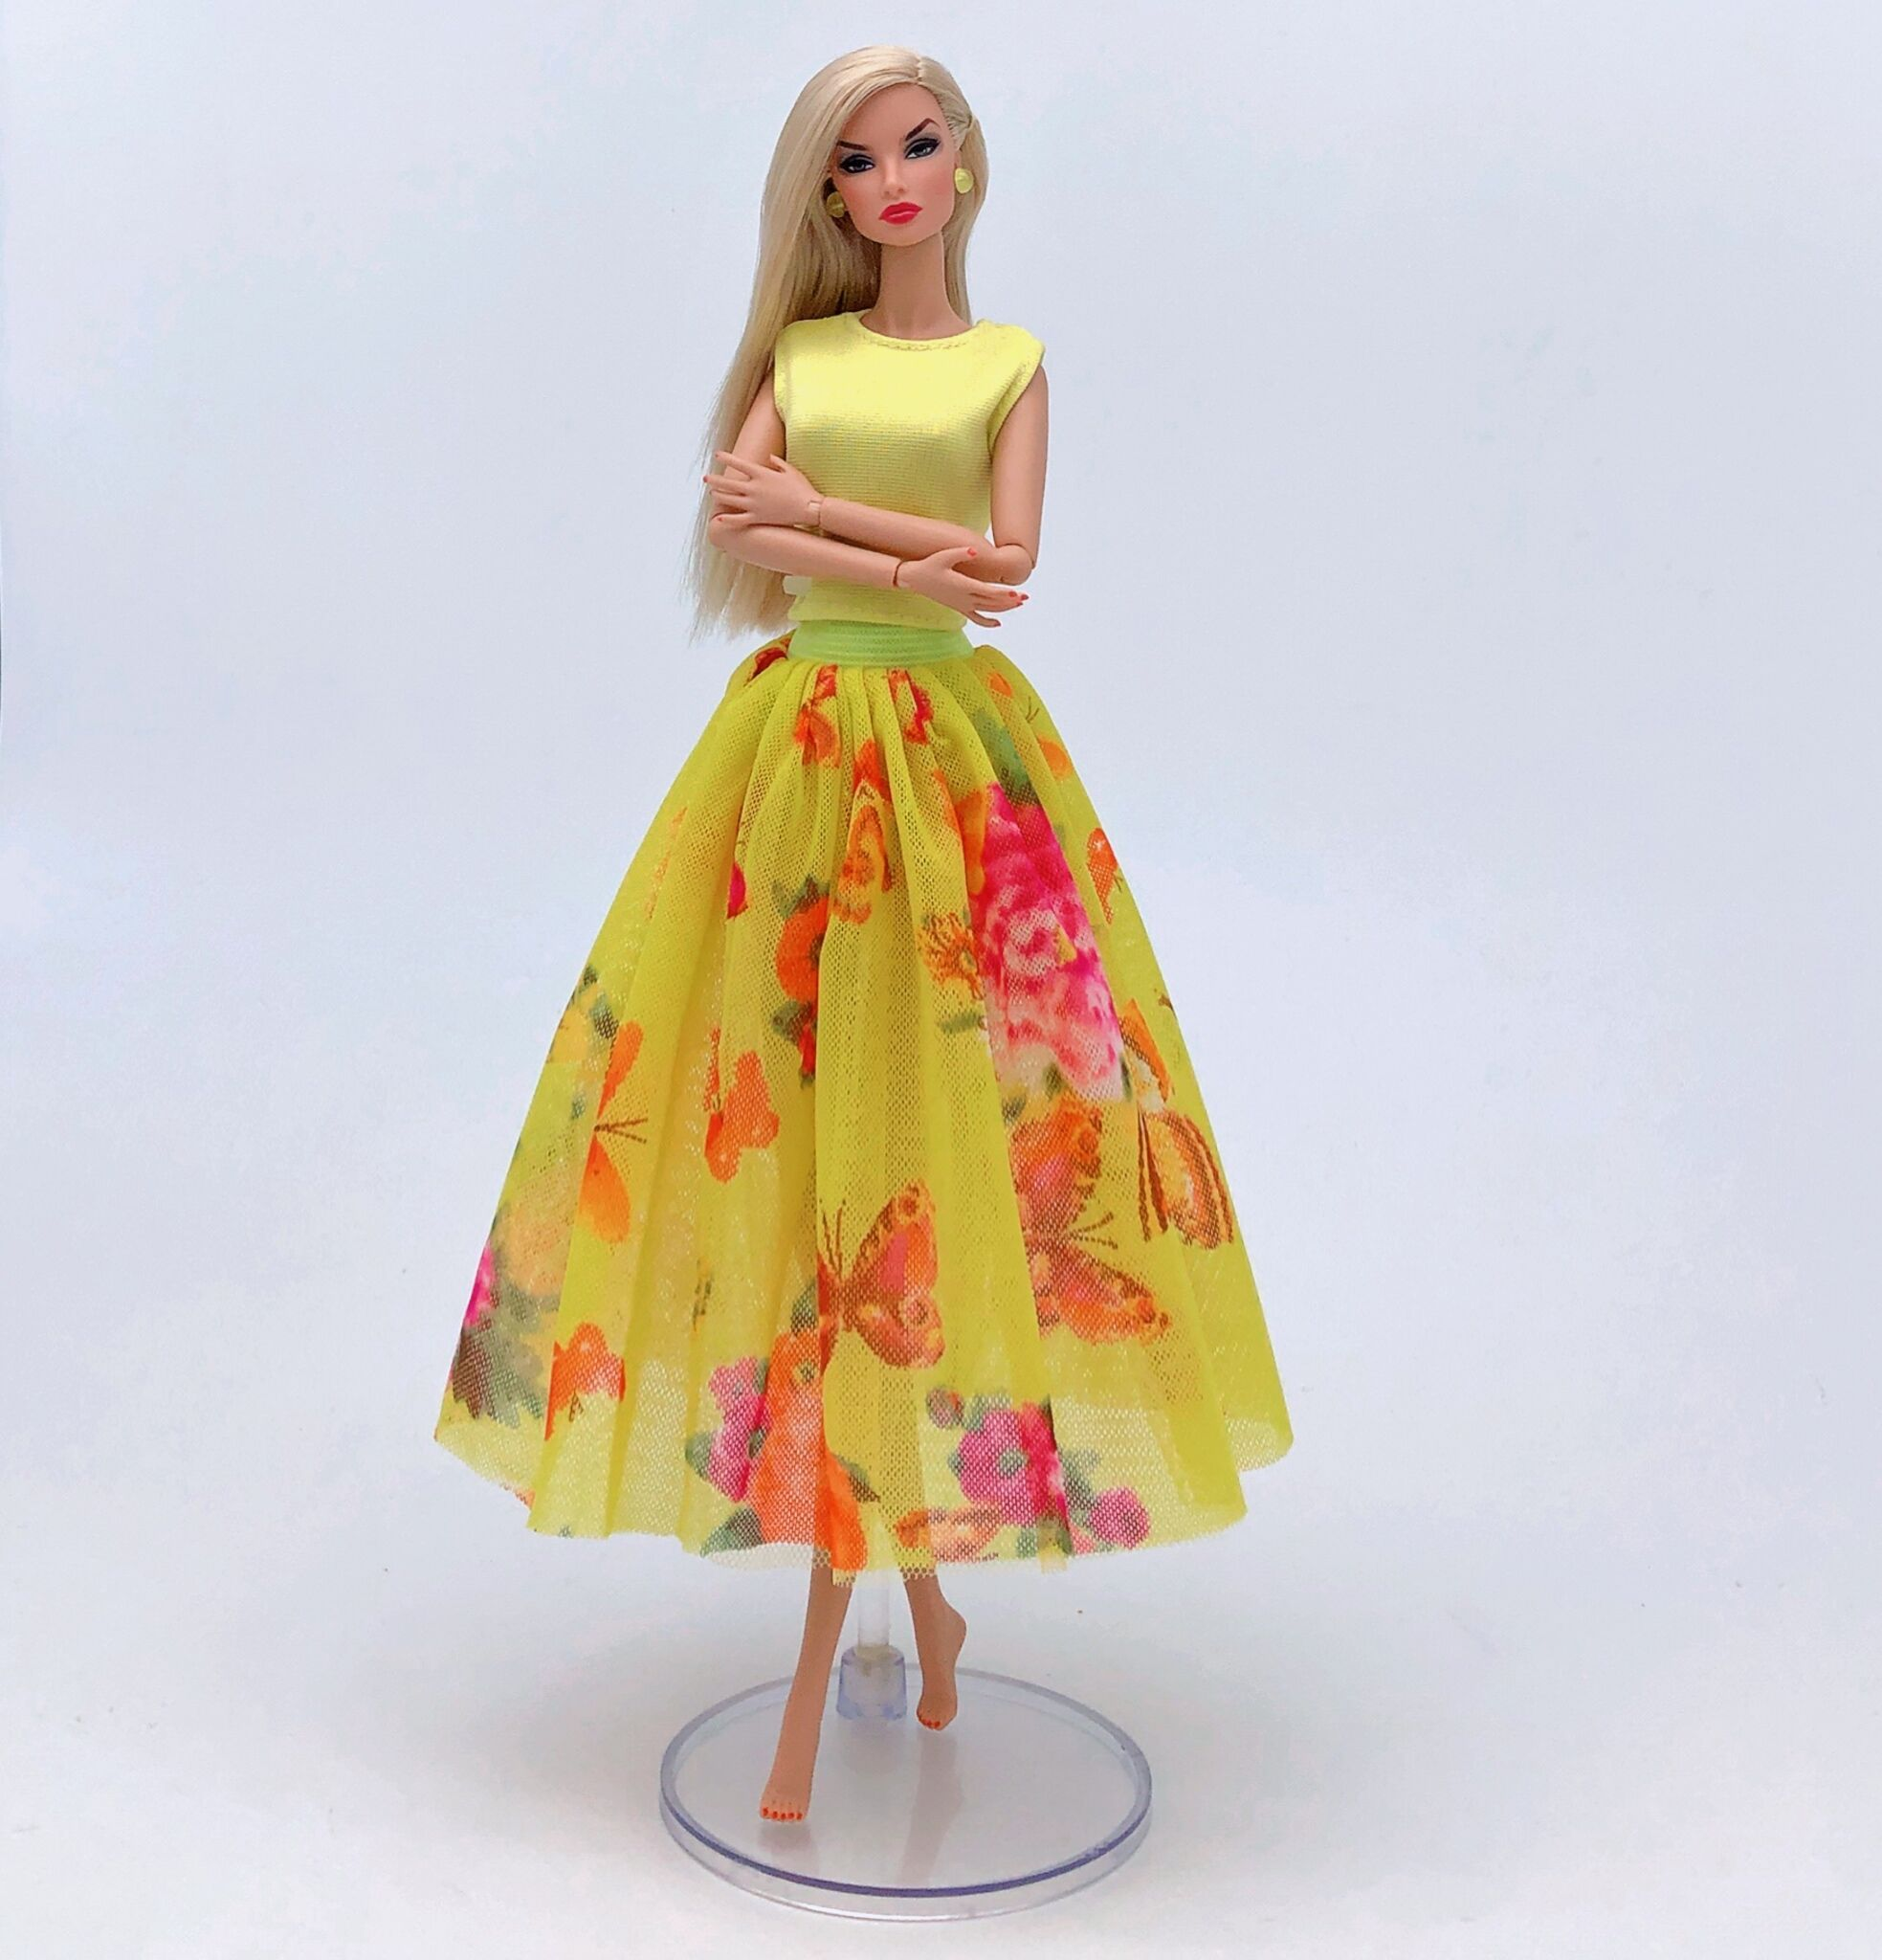 Party Dress Top Skirt Clothes For Barbie 1/6 Original Doll Accessories Costume Play House Casual Dressing Up Child Toys Gift